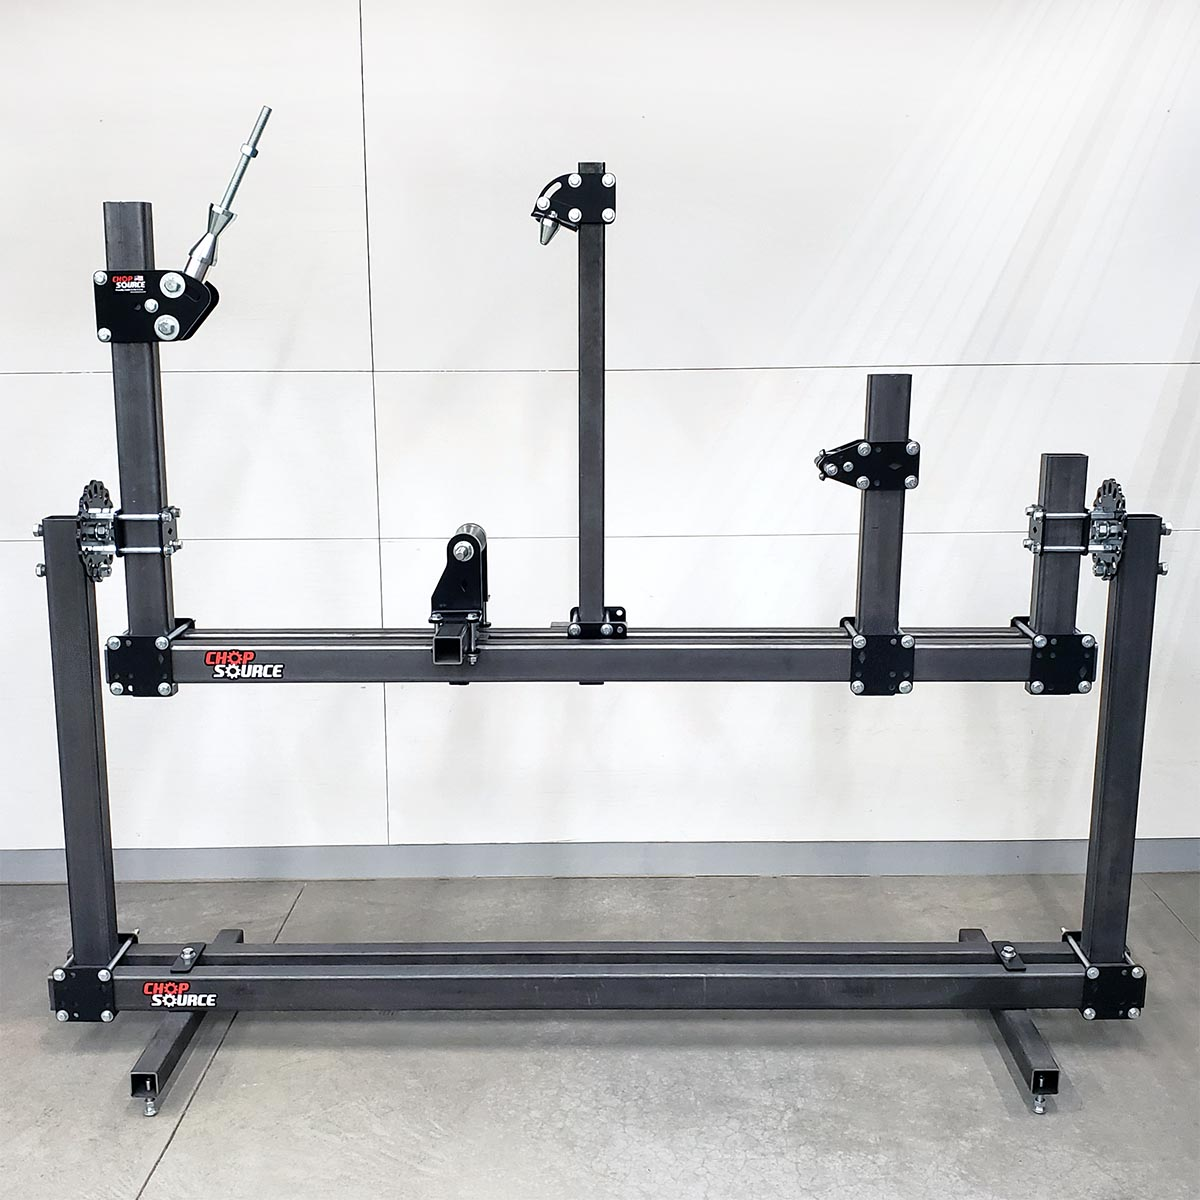 Chop Source Frame Jig Fixtures